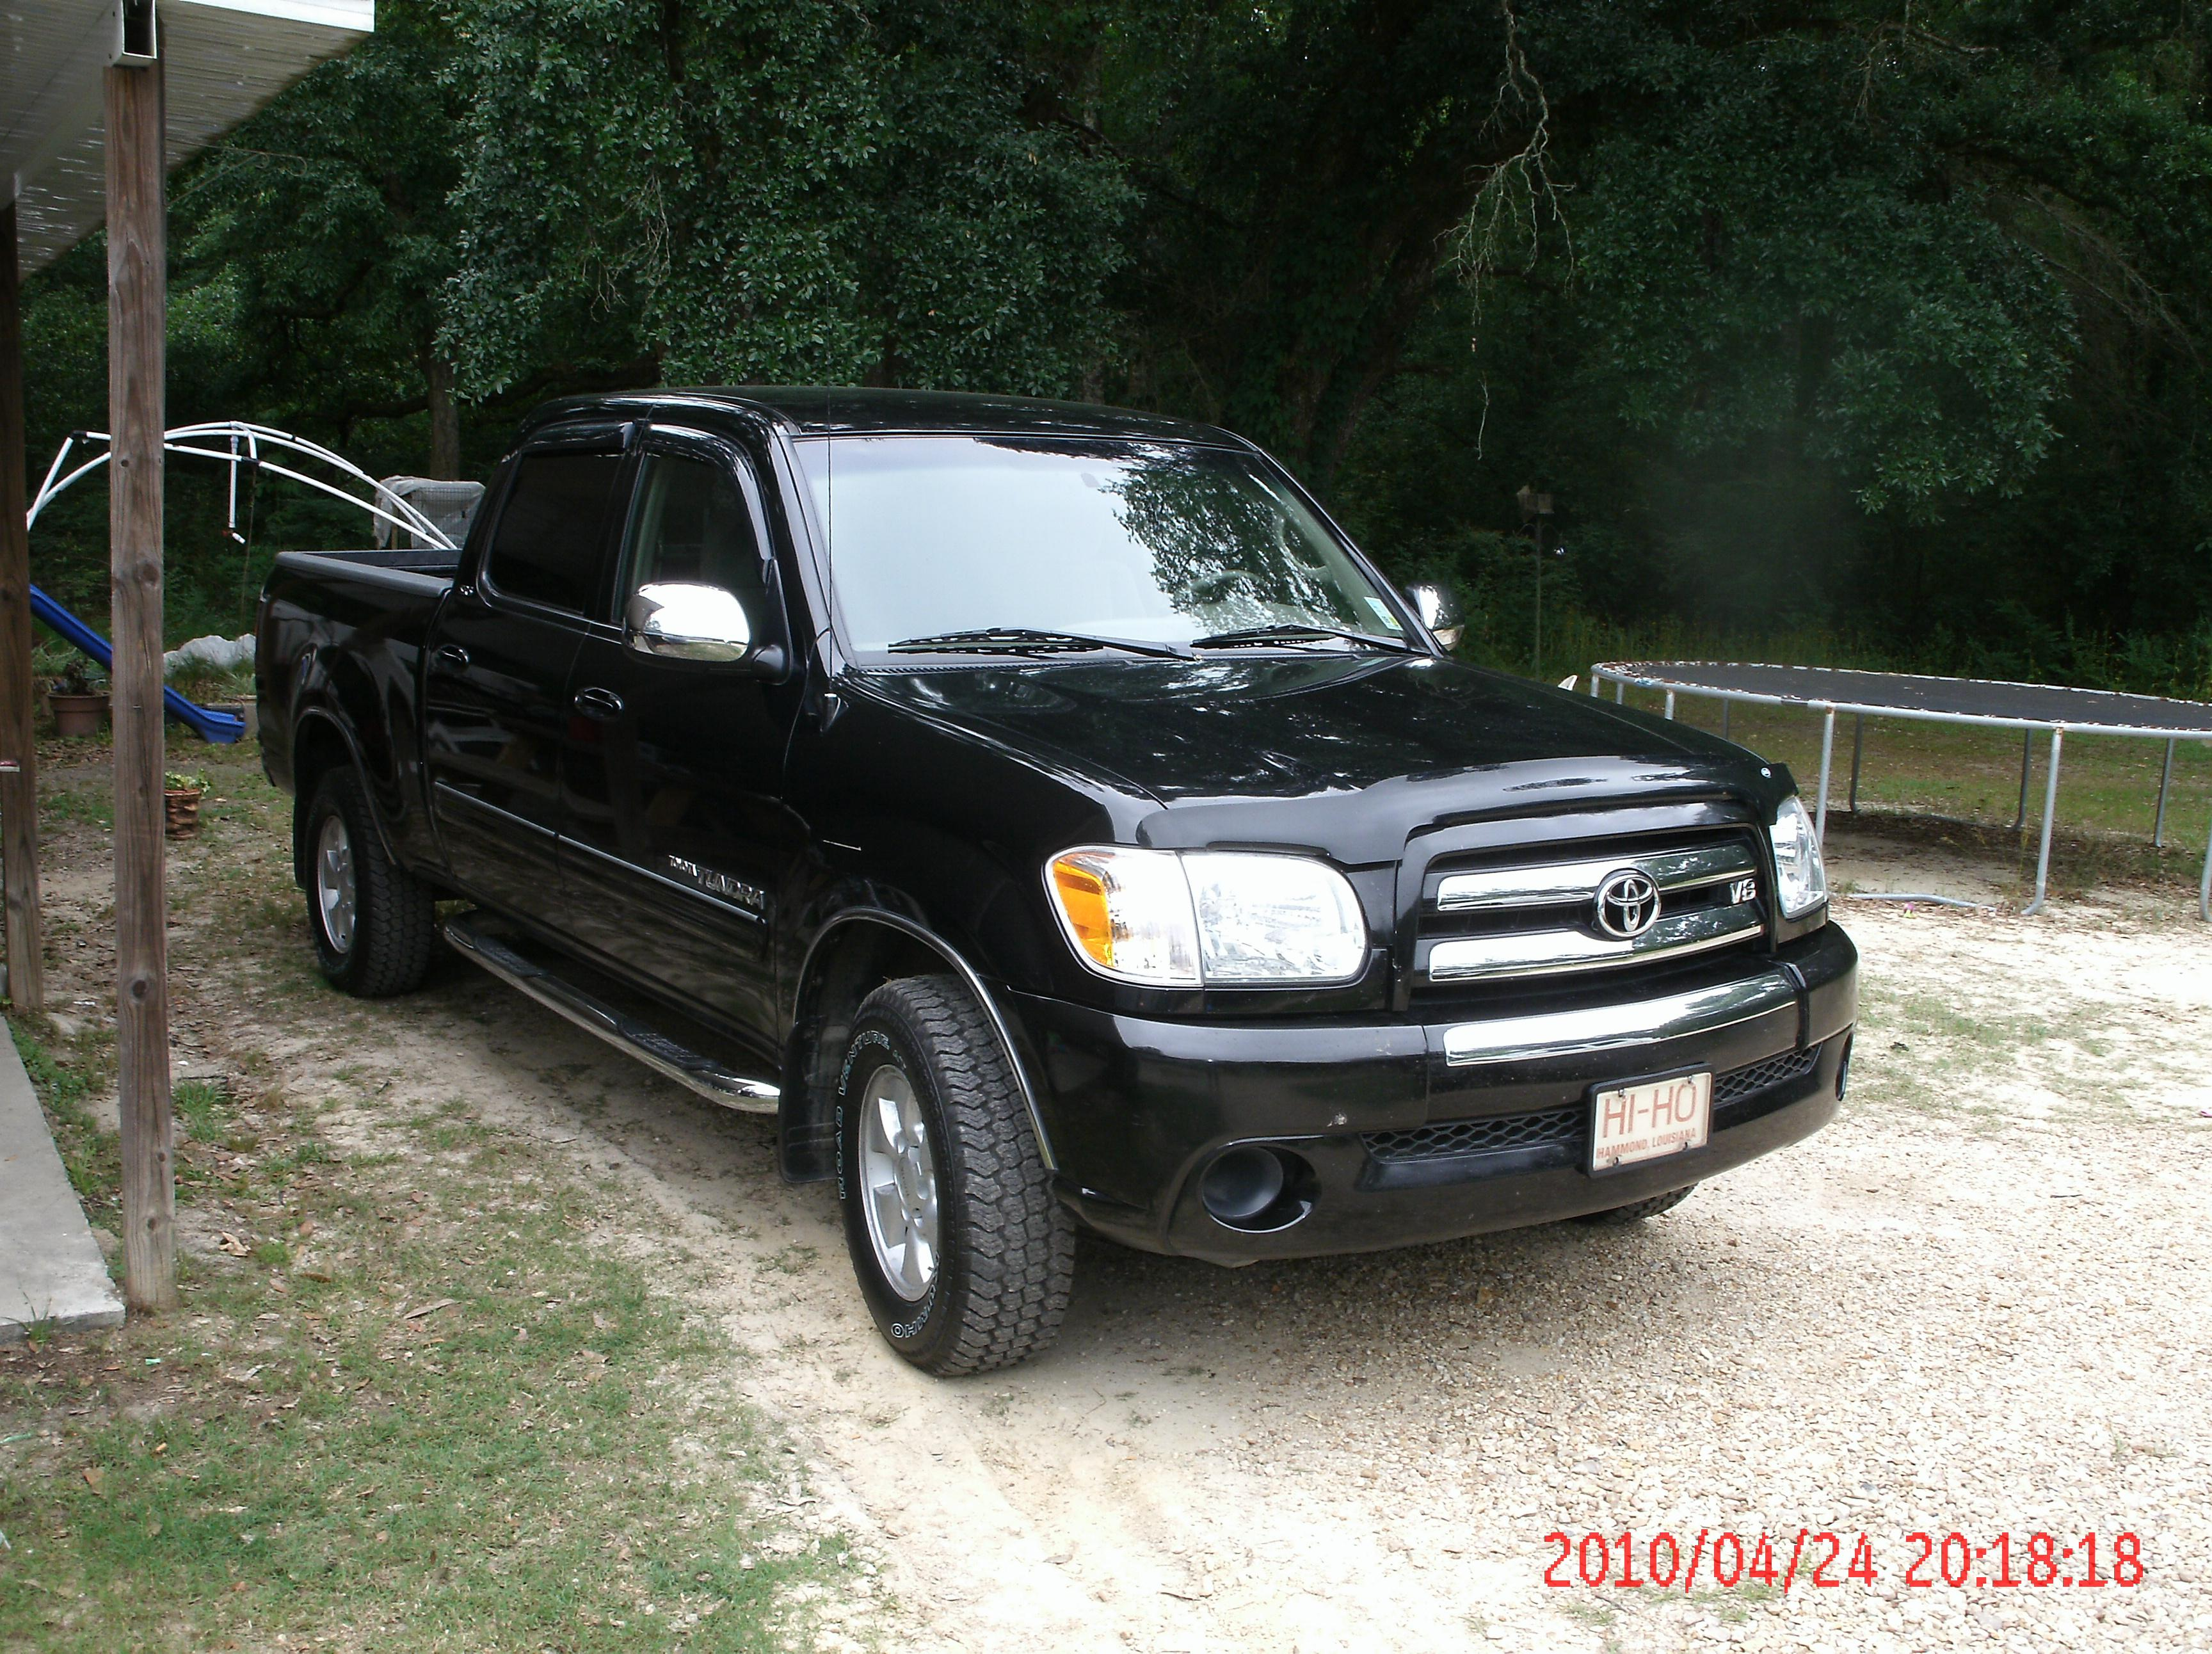 charger2201 2005 toyota tundra double cab specs photos modification info at cardomain. Black Bedroom Furniture Sets. Home Design Ideas